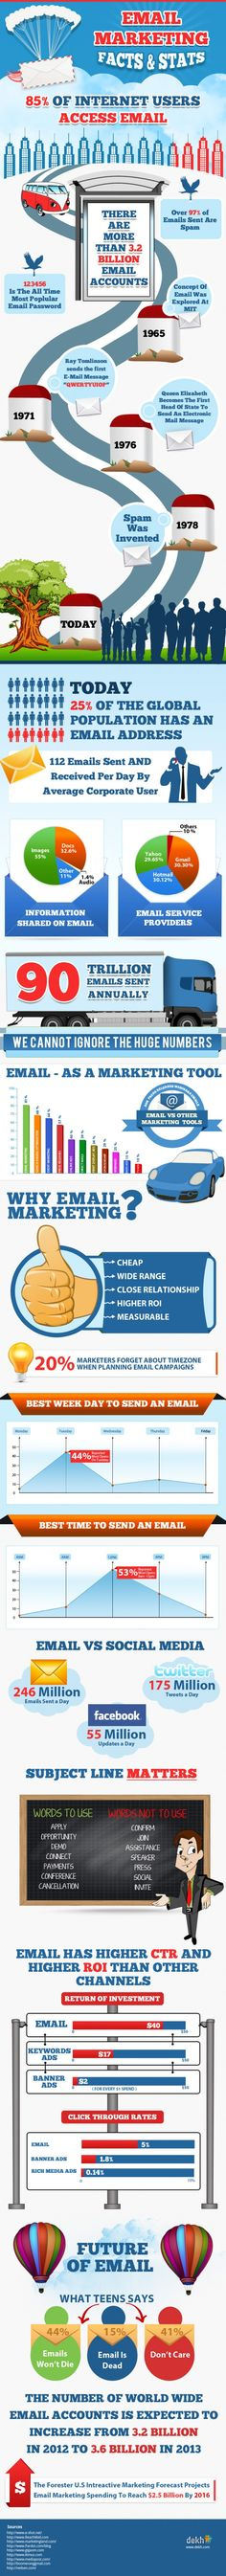 eMail Marketing Facts and Stats. #emailmarketing #infographic #marketingonline